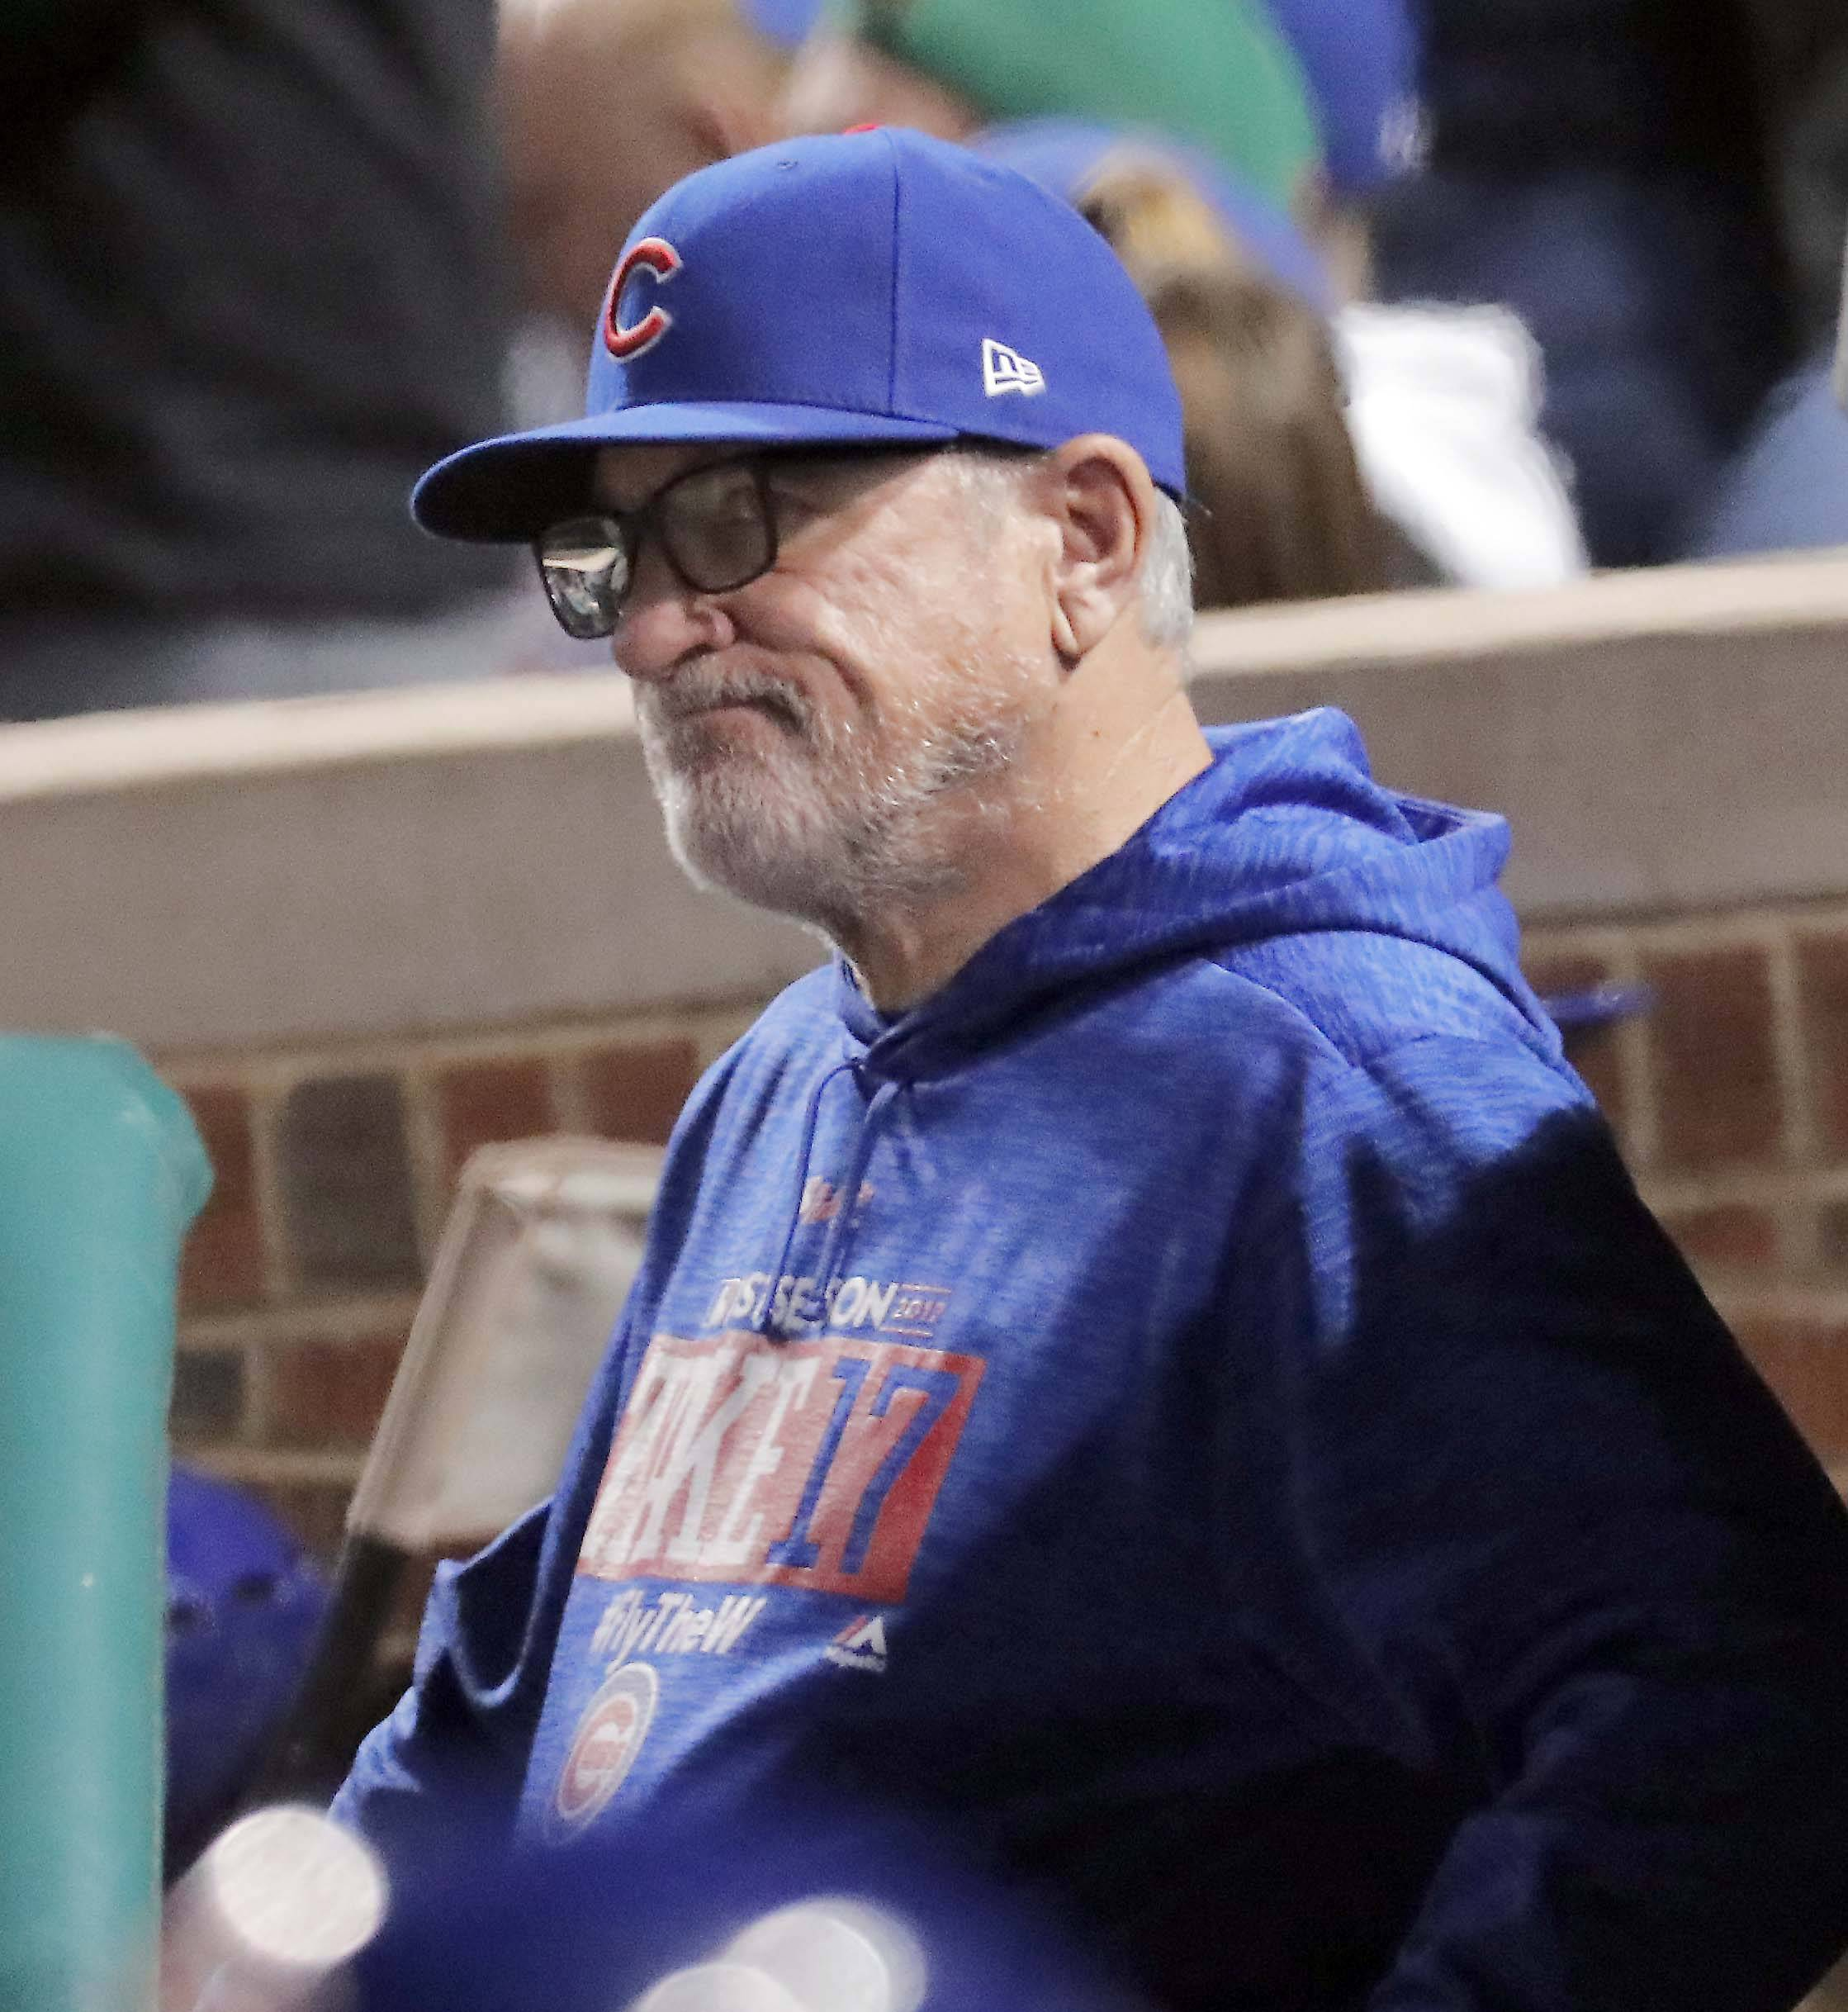 Maddon won't rule out Schwarber leading off again for Chicago Cubs